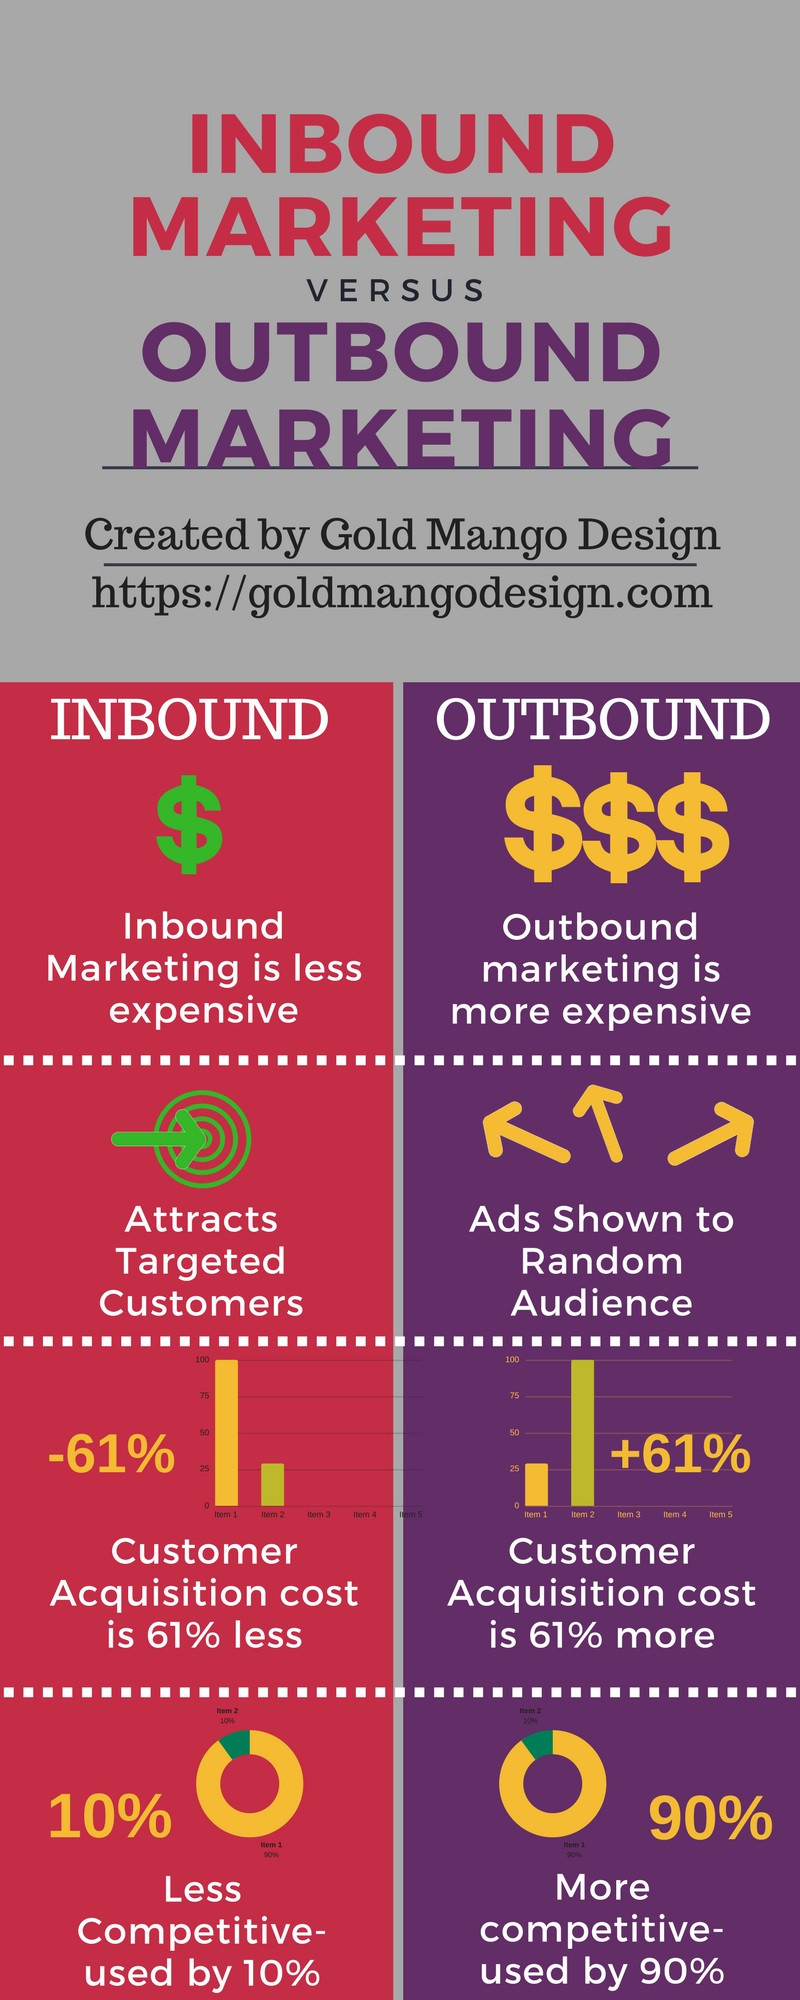 Real estate inbound vs outbound marketing